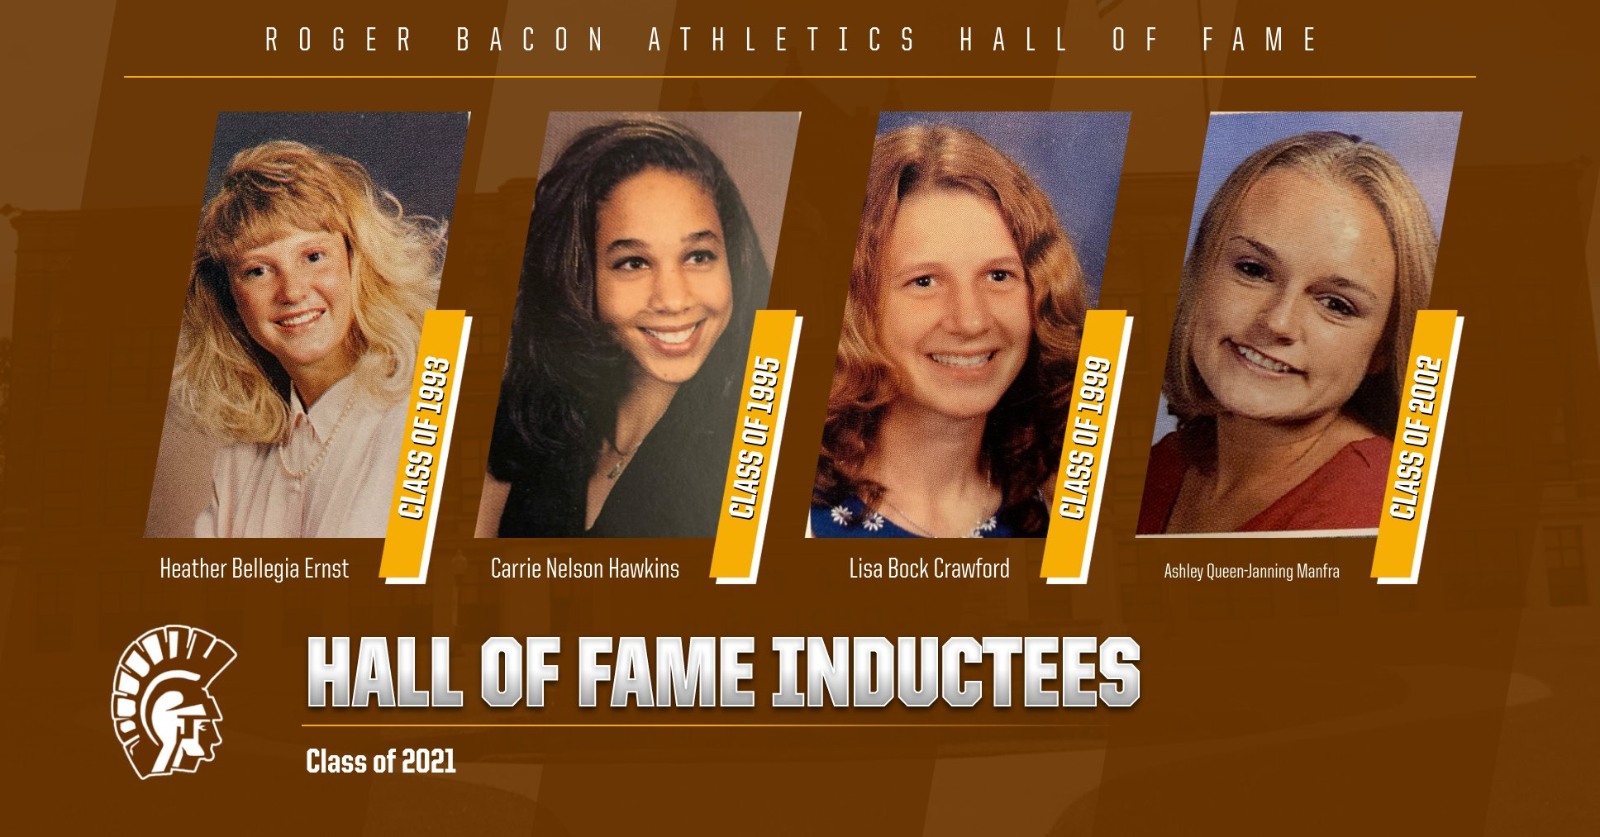 Roger Bacon Athletics announces newest HOF inductees